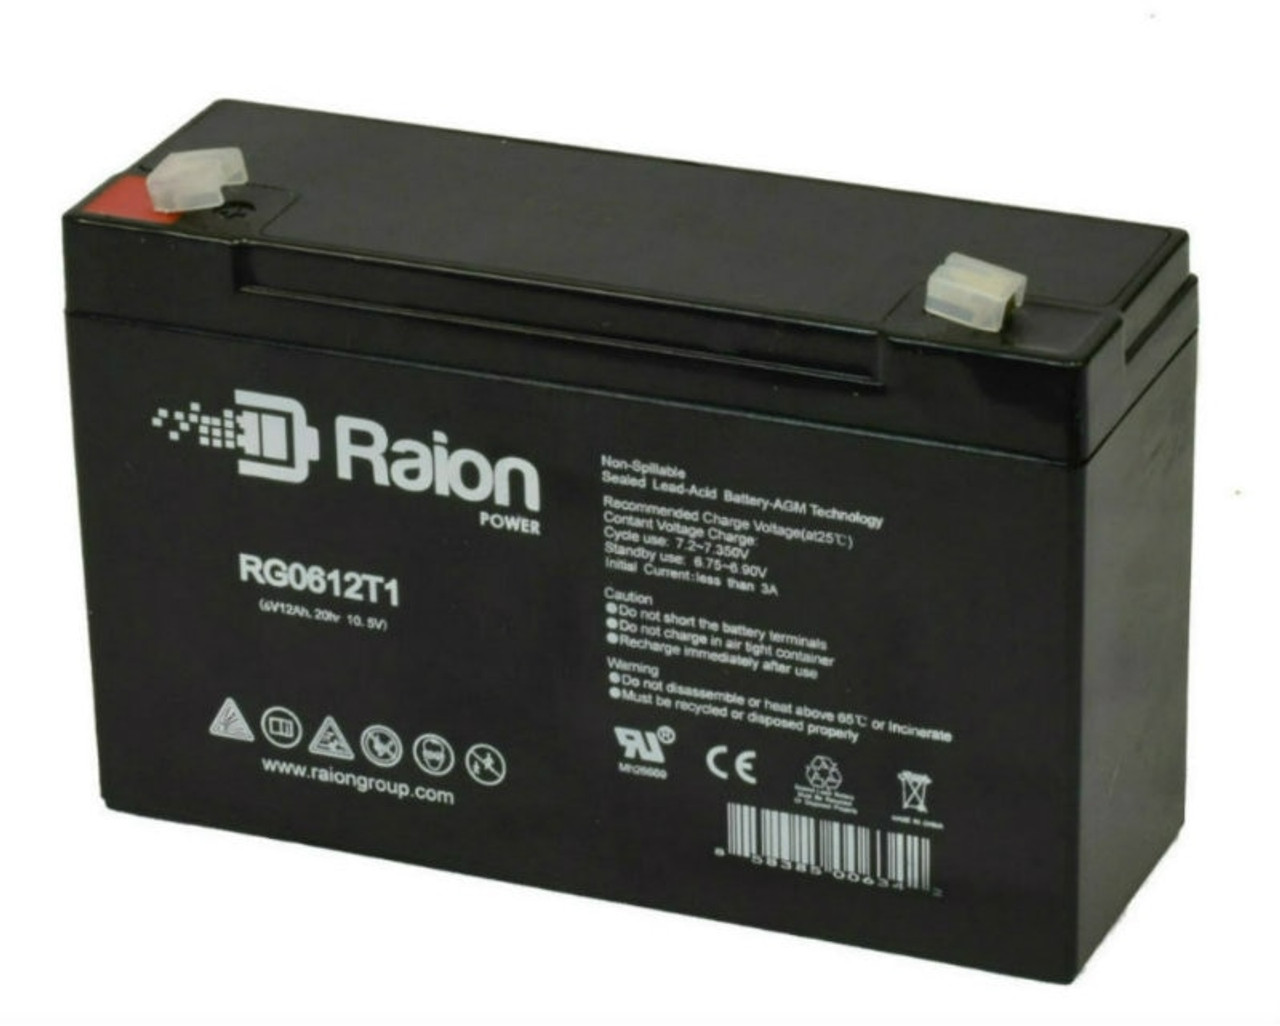 Raion Power RG06120T1 Replacement Battery Pack for Light Alarms CE15AC emergency light